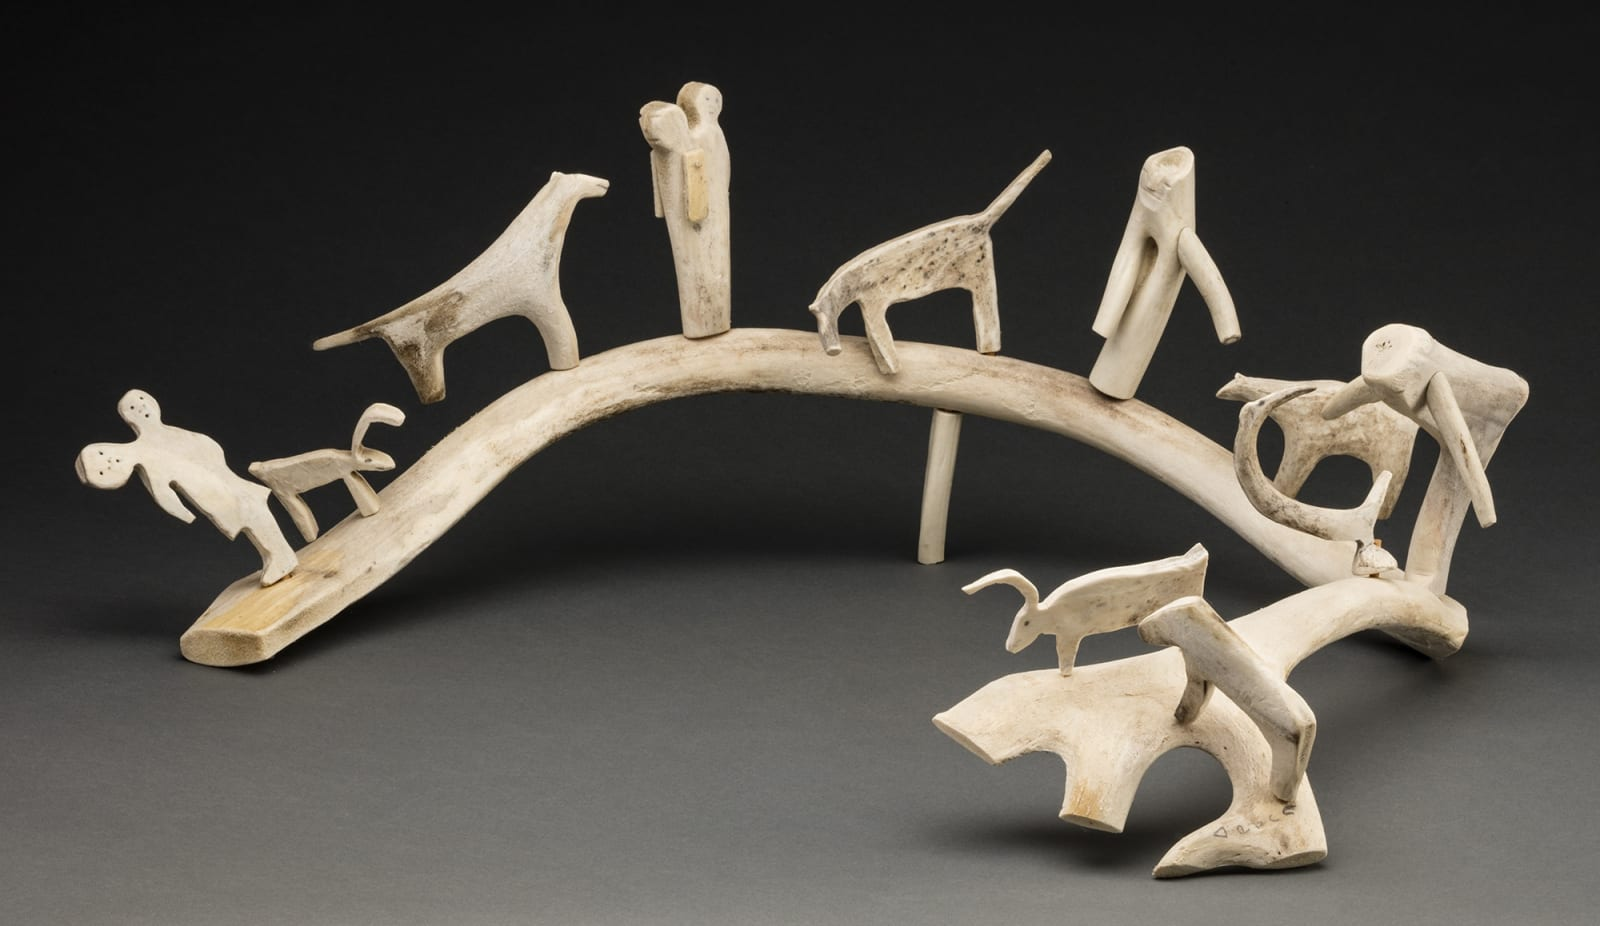 Lot 28 LUKE ANOWTALIK (1932-2006) ARVIAT (ESKIMO POINT) Composition with People and Animals, 2005 antler, graphite, sinew, and wood, 8.75 x 28.5 x 19.5 in (22.2 x 72.4 x 49.5 cm) Estimate: $6,000 — $9,000 PRICE REALIZED: $4,480